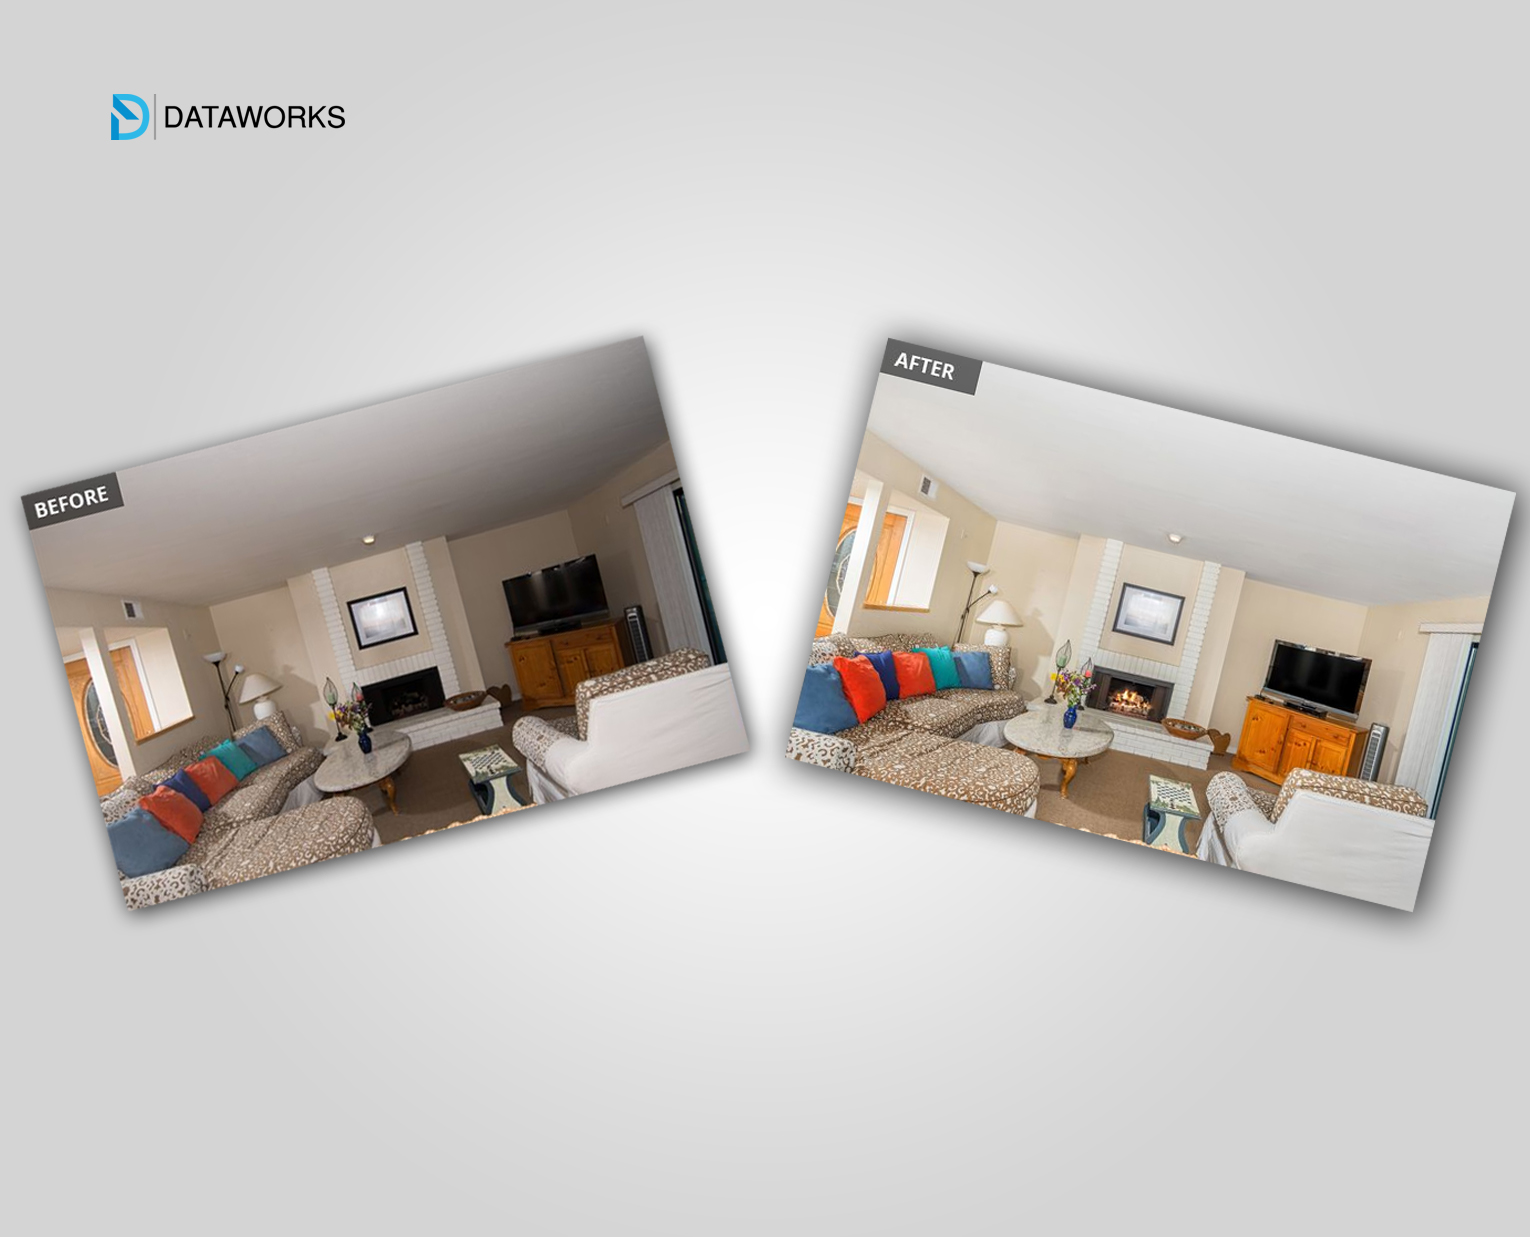 Why do real estate businesses need photo editing services?